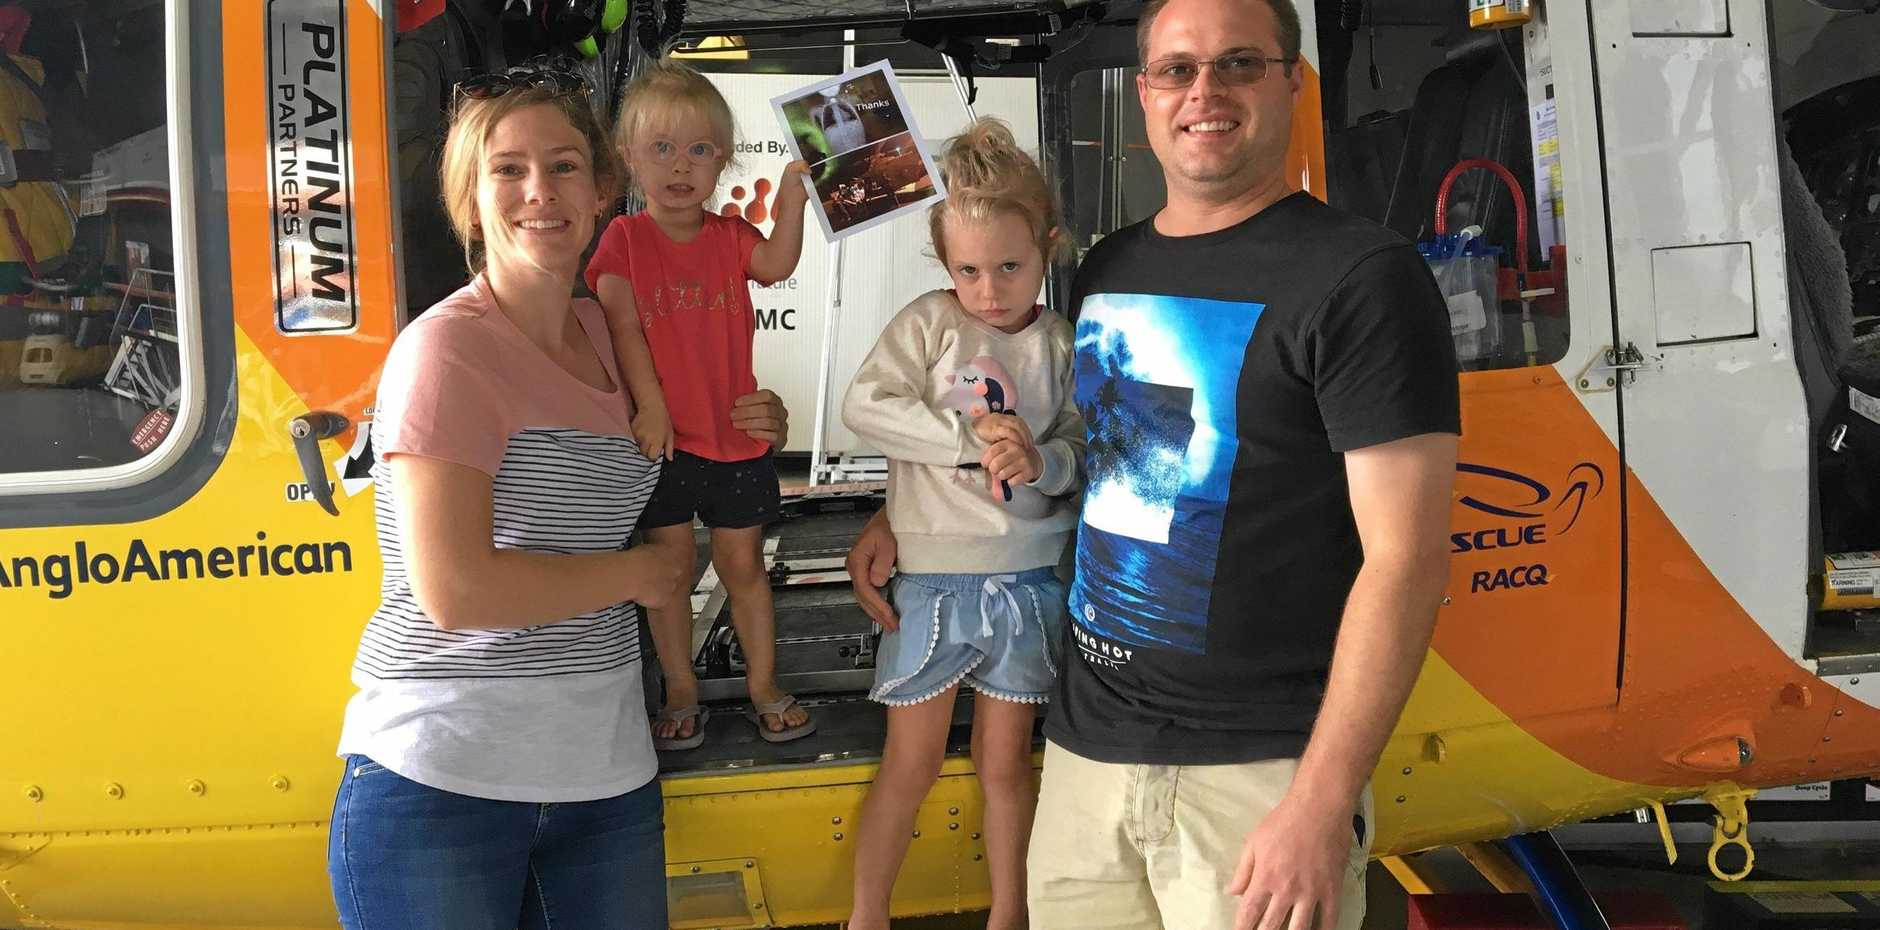 HEARTFELT THANKS: The Wright family, Jana, Belle, Grace and Hayden, visited the RACQ CQ Rescue hangar to say thanks and make a donation. Belle was airlifted in February after she swallowed a coin.